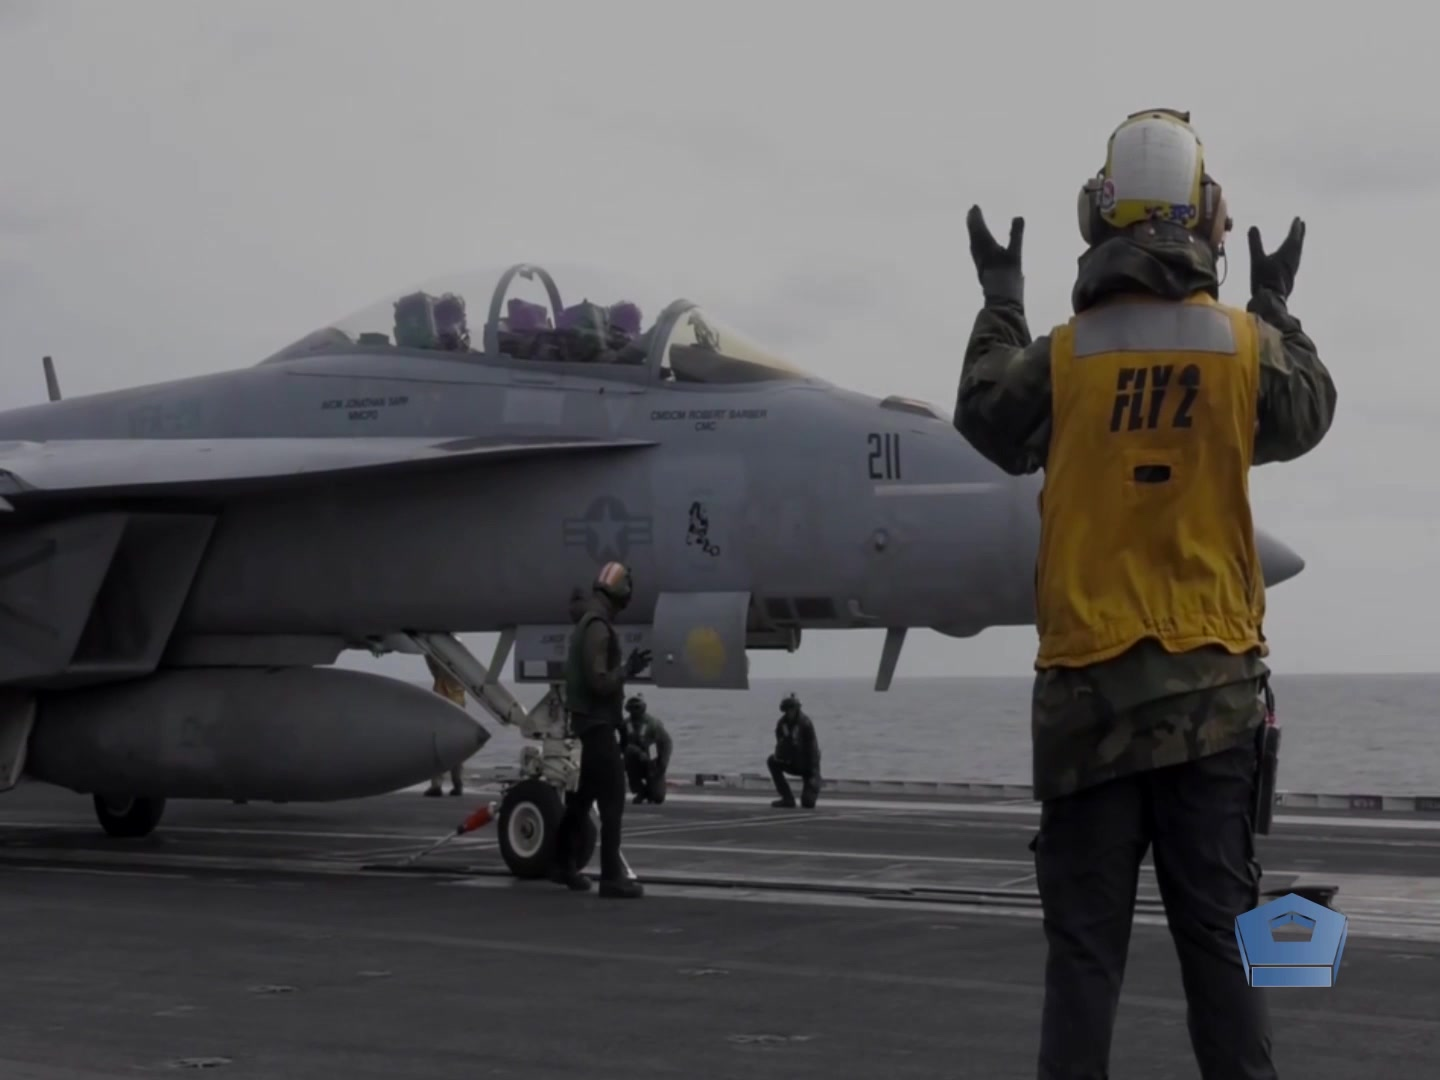 Flight deck operations on an aircraft carrier have often been compared to a ballet. Watch the choreography needed to launch and recover aircraft and supplies aboard the USS Harry S. Truman. The Truman can carry about 90 aircraft and has a 4.5-acre flight deck. Four elevators move aircraft between the flight deck and the hangar bay.